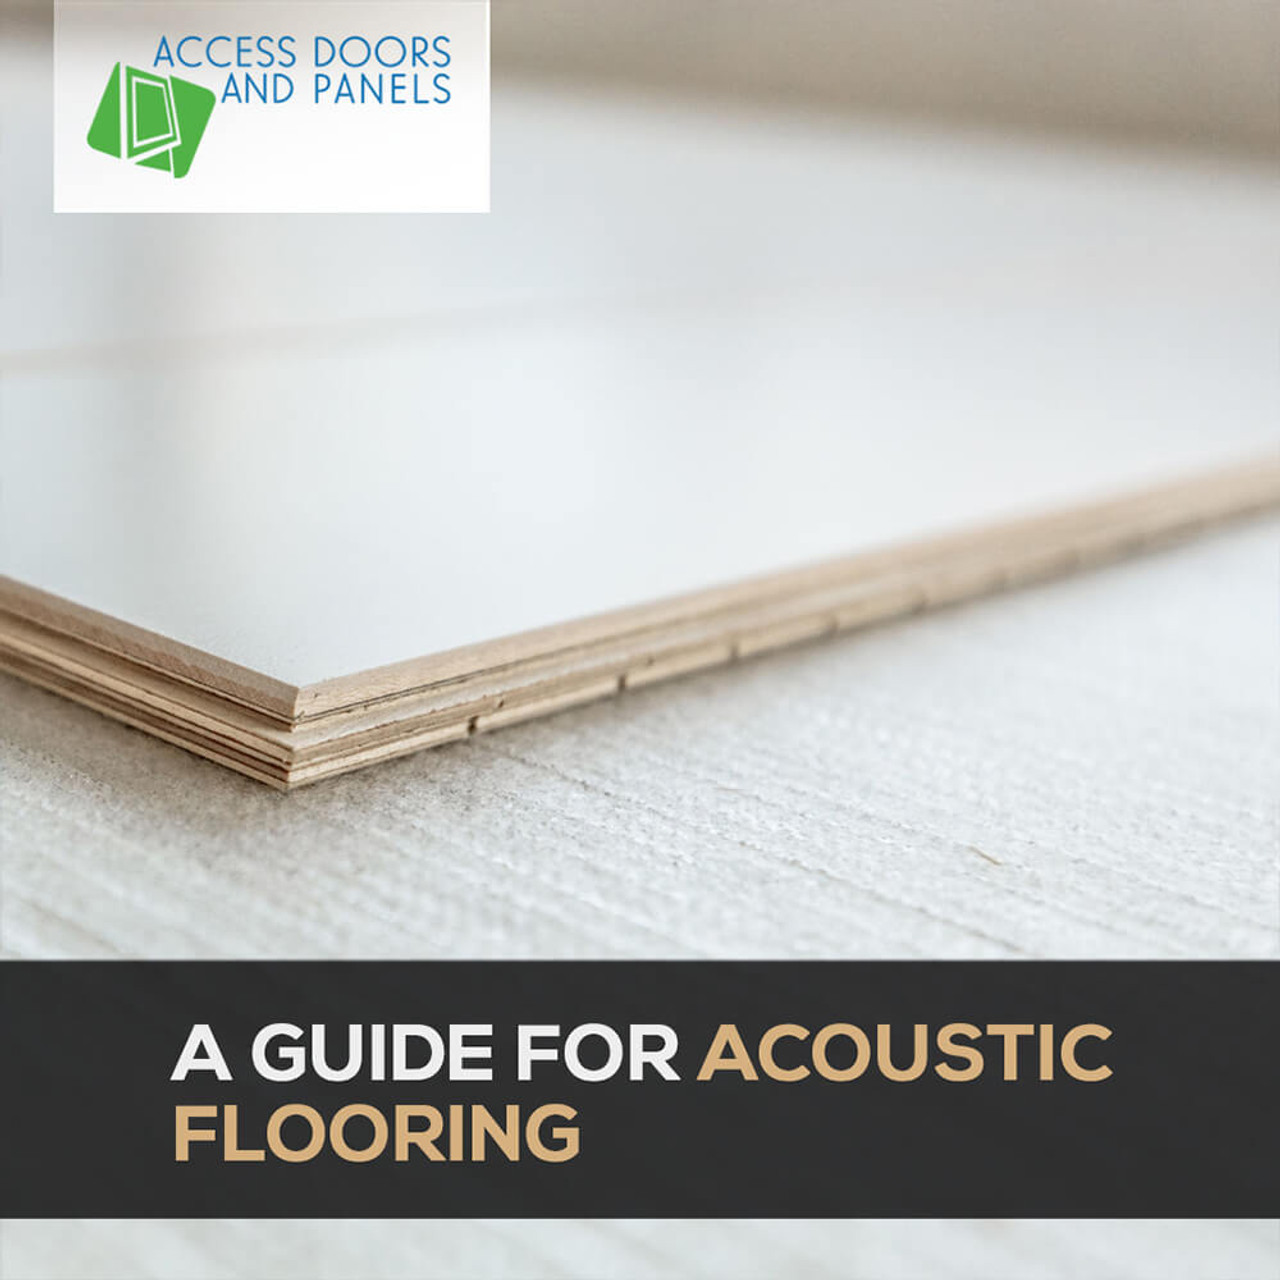 A Guide for Acoustic Flooring